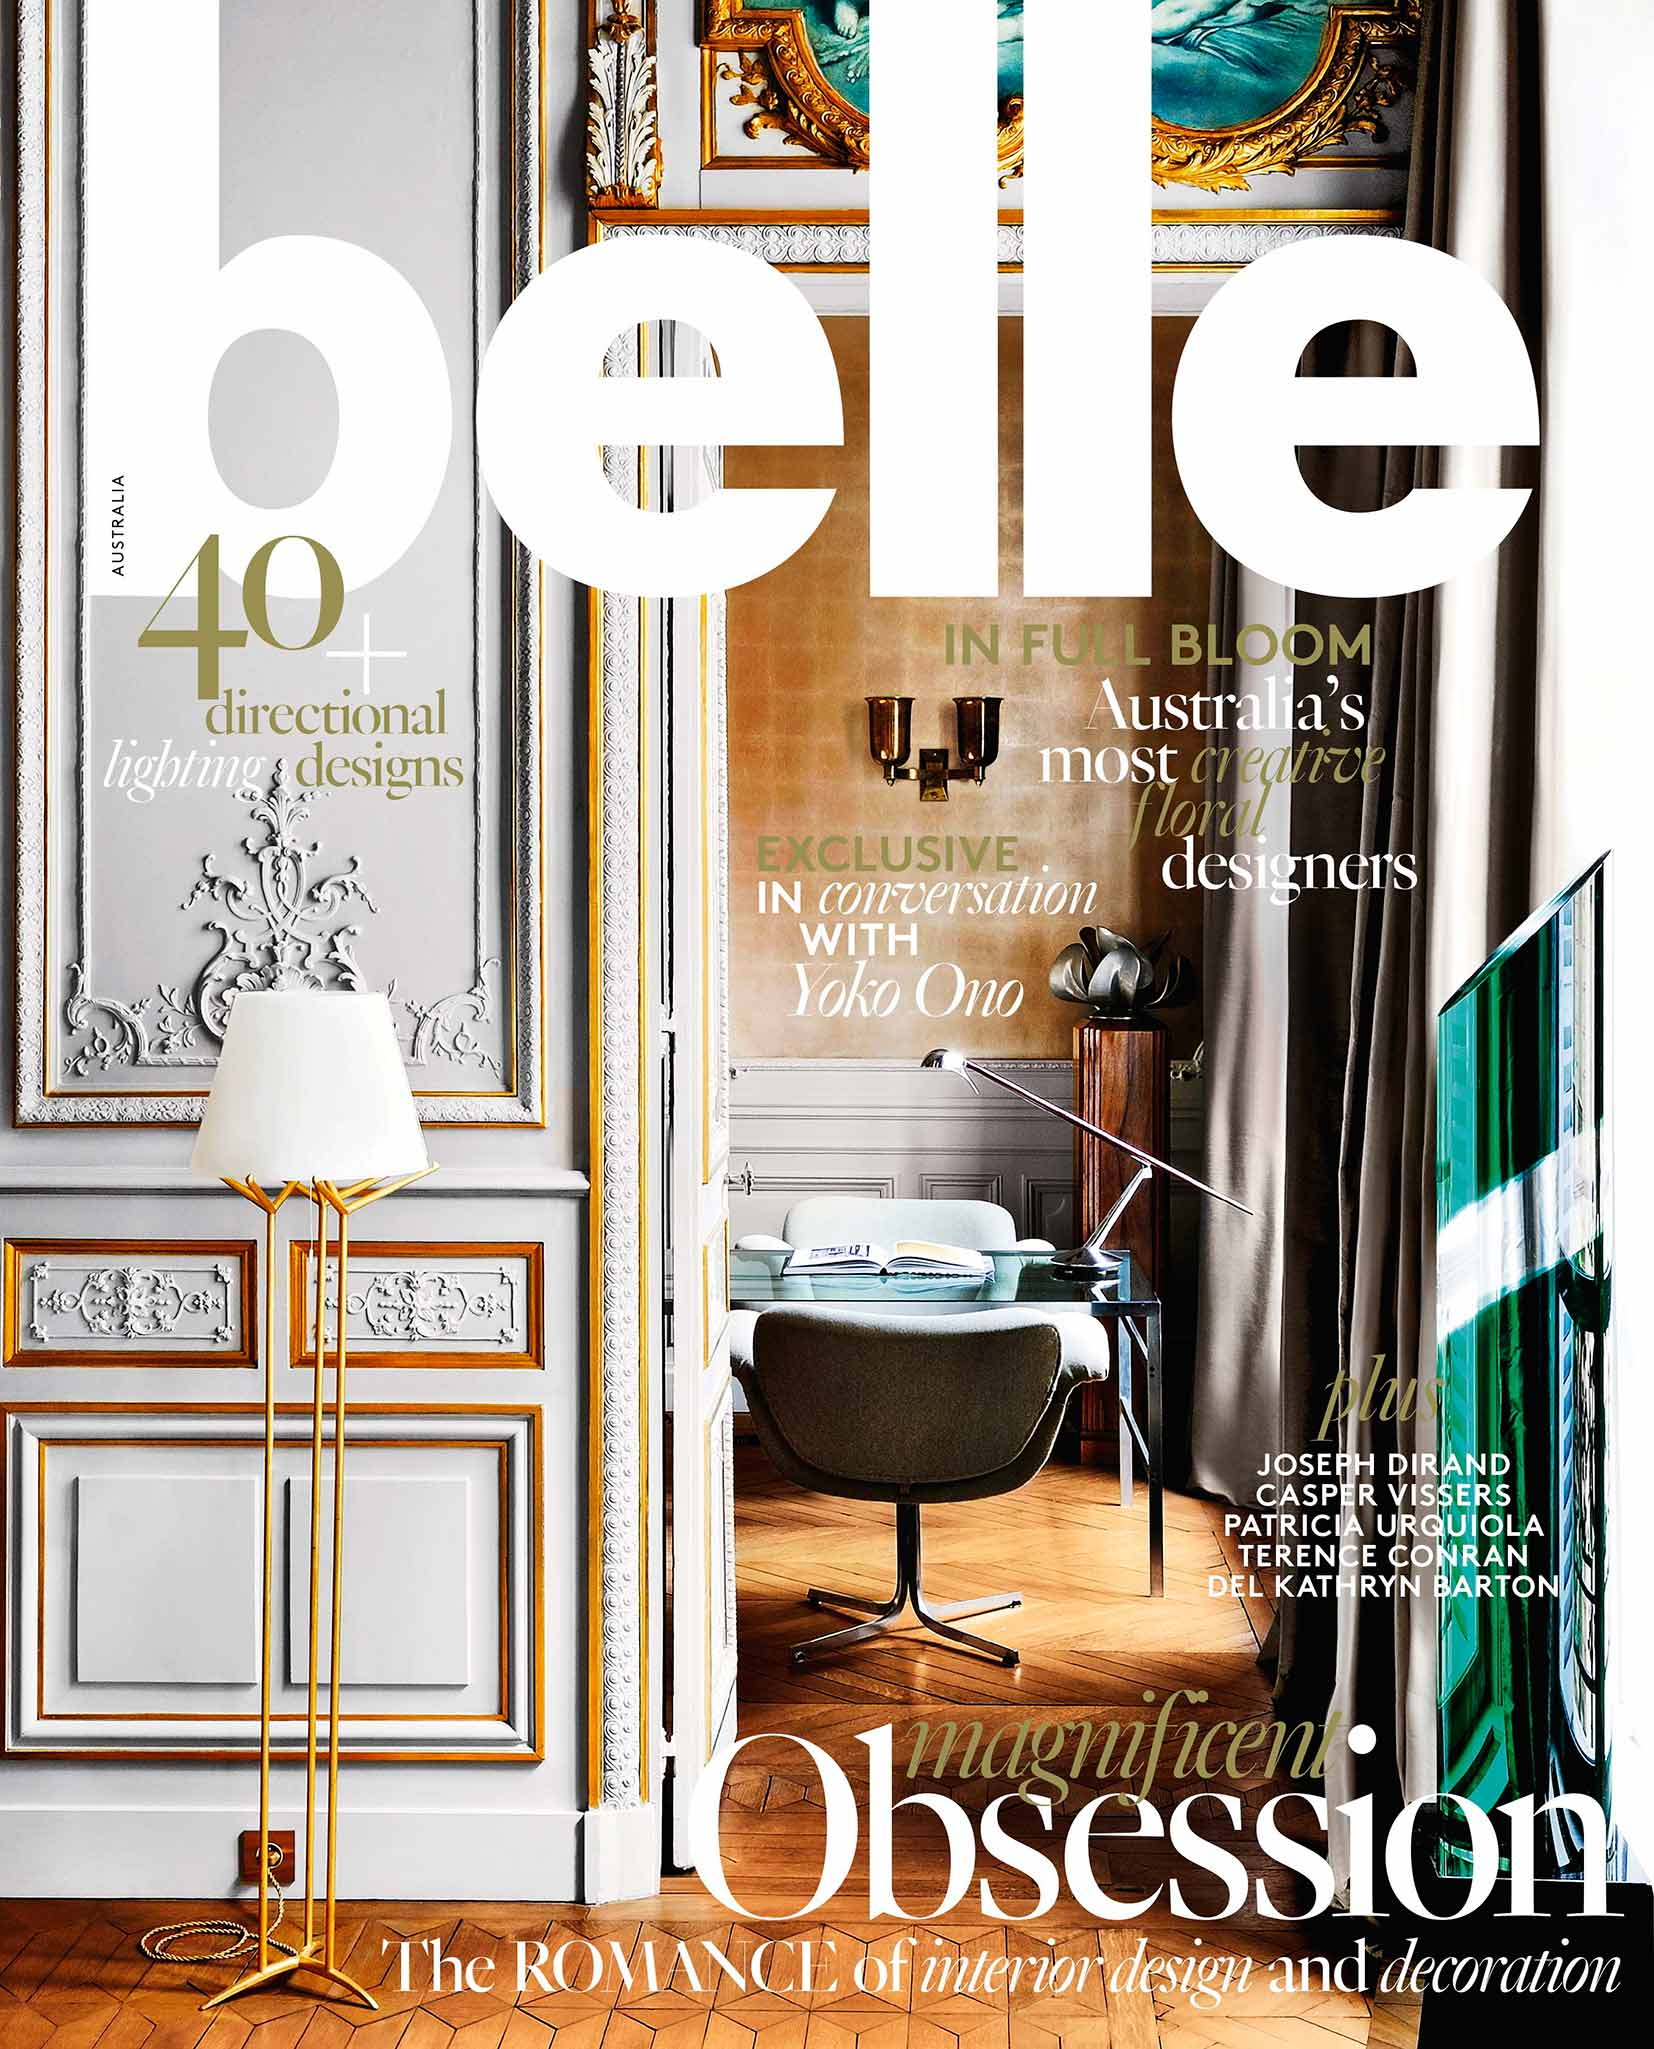 Belle-Feb-March-2014,-Cover